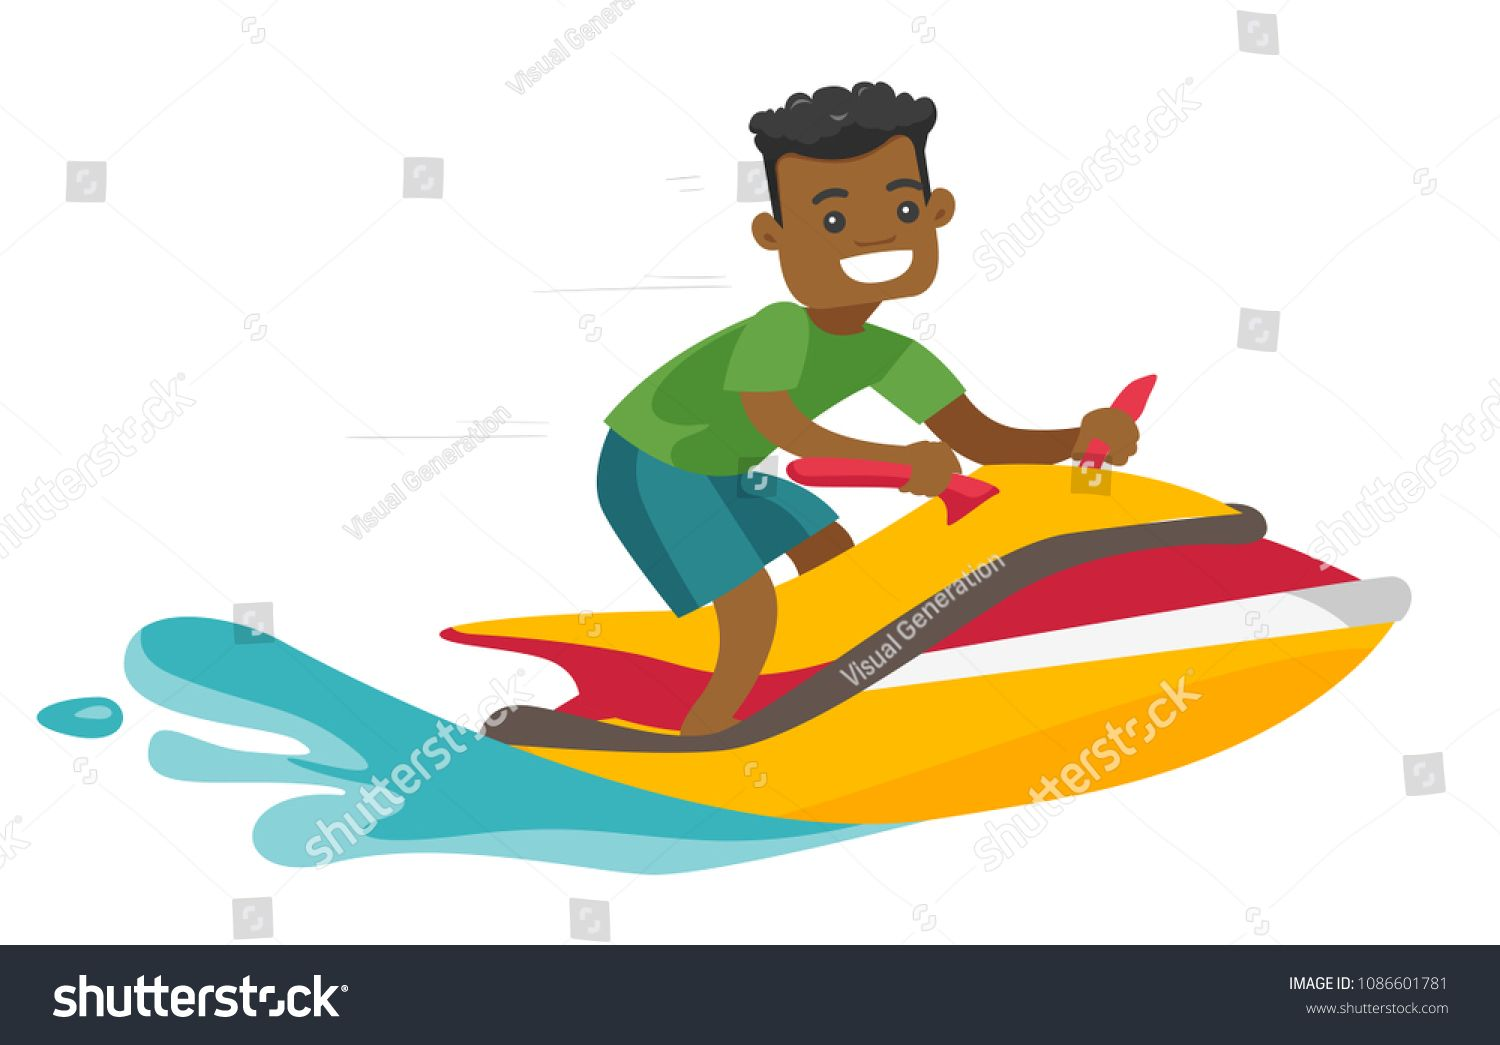 Black Man Riding A Jet Ski Scooter In The Sea At Summer Sunny Day Young Sports Excited Man Riding A Water Scooter Leisure Activities Co Jet Ski Riding Skiing